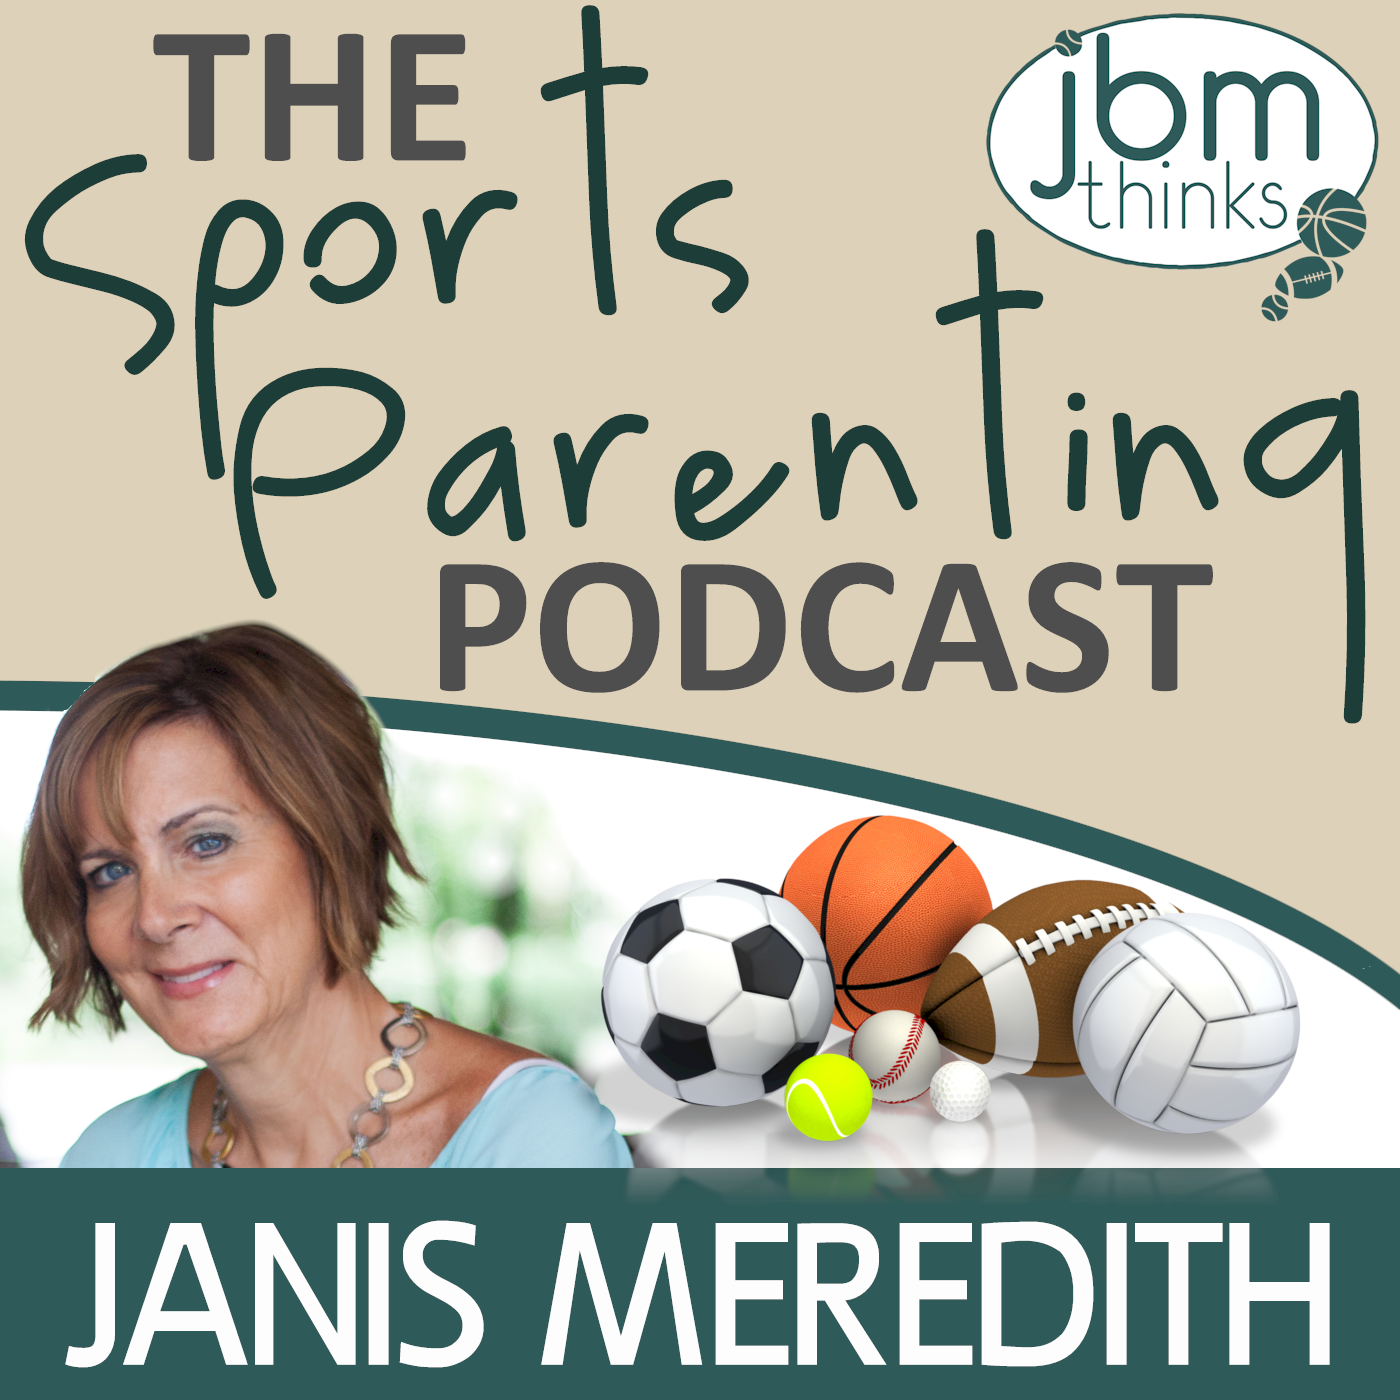 podcast – The Sports Parenting Podcast | JBM Thinks